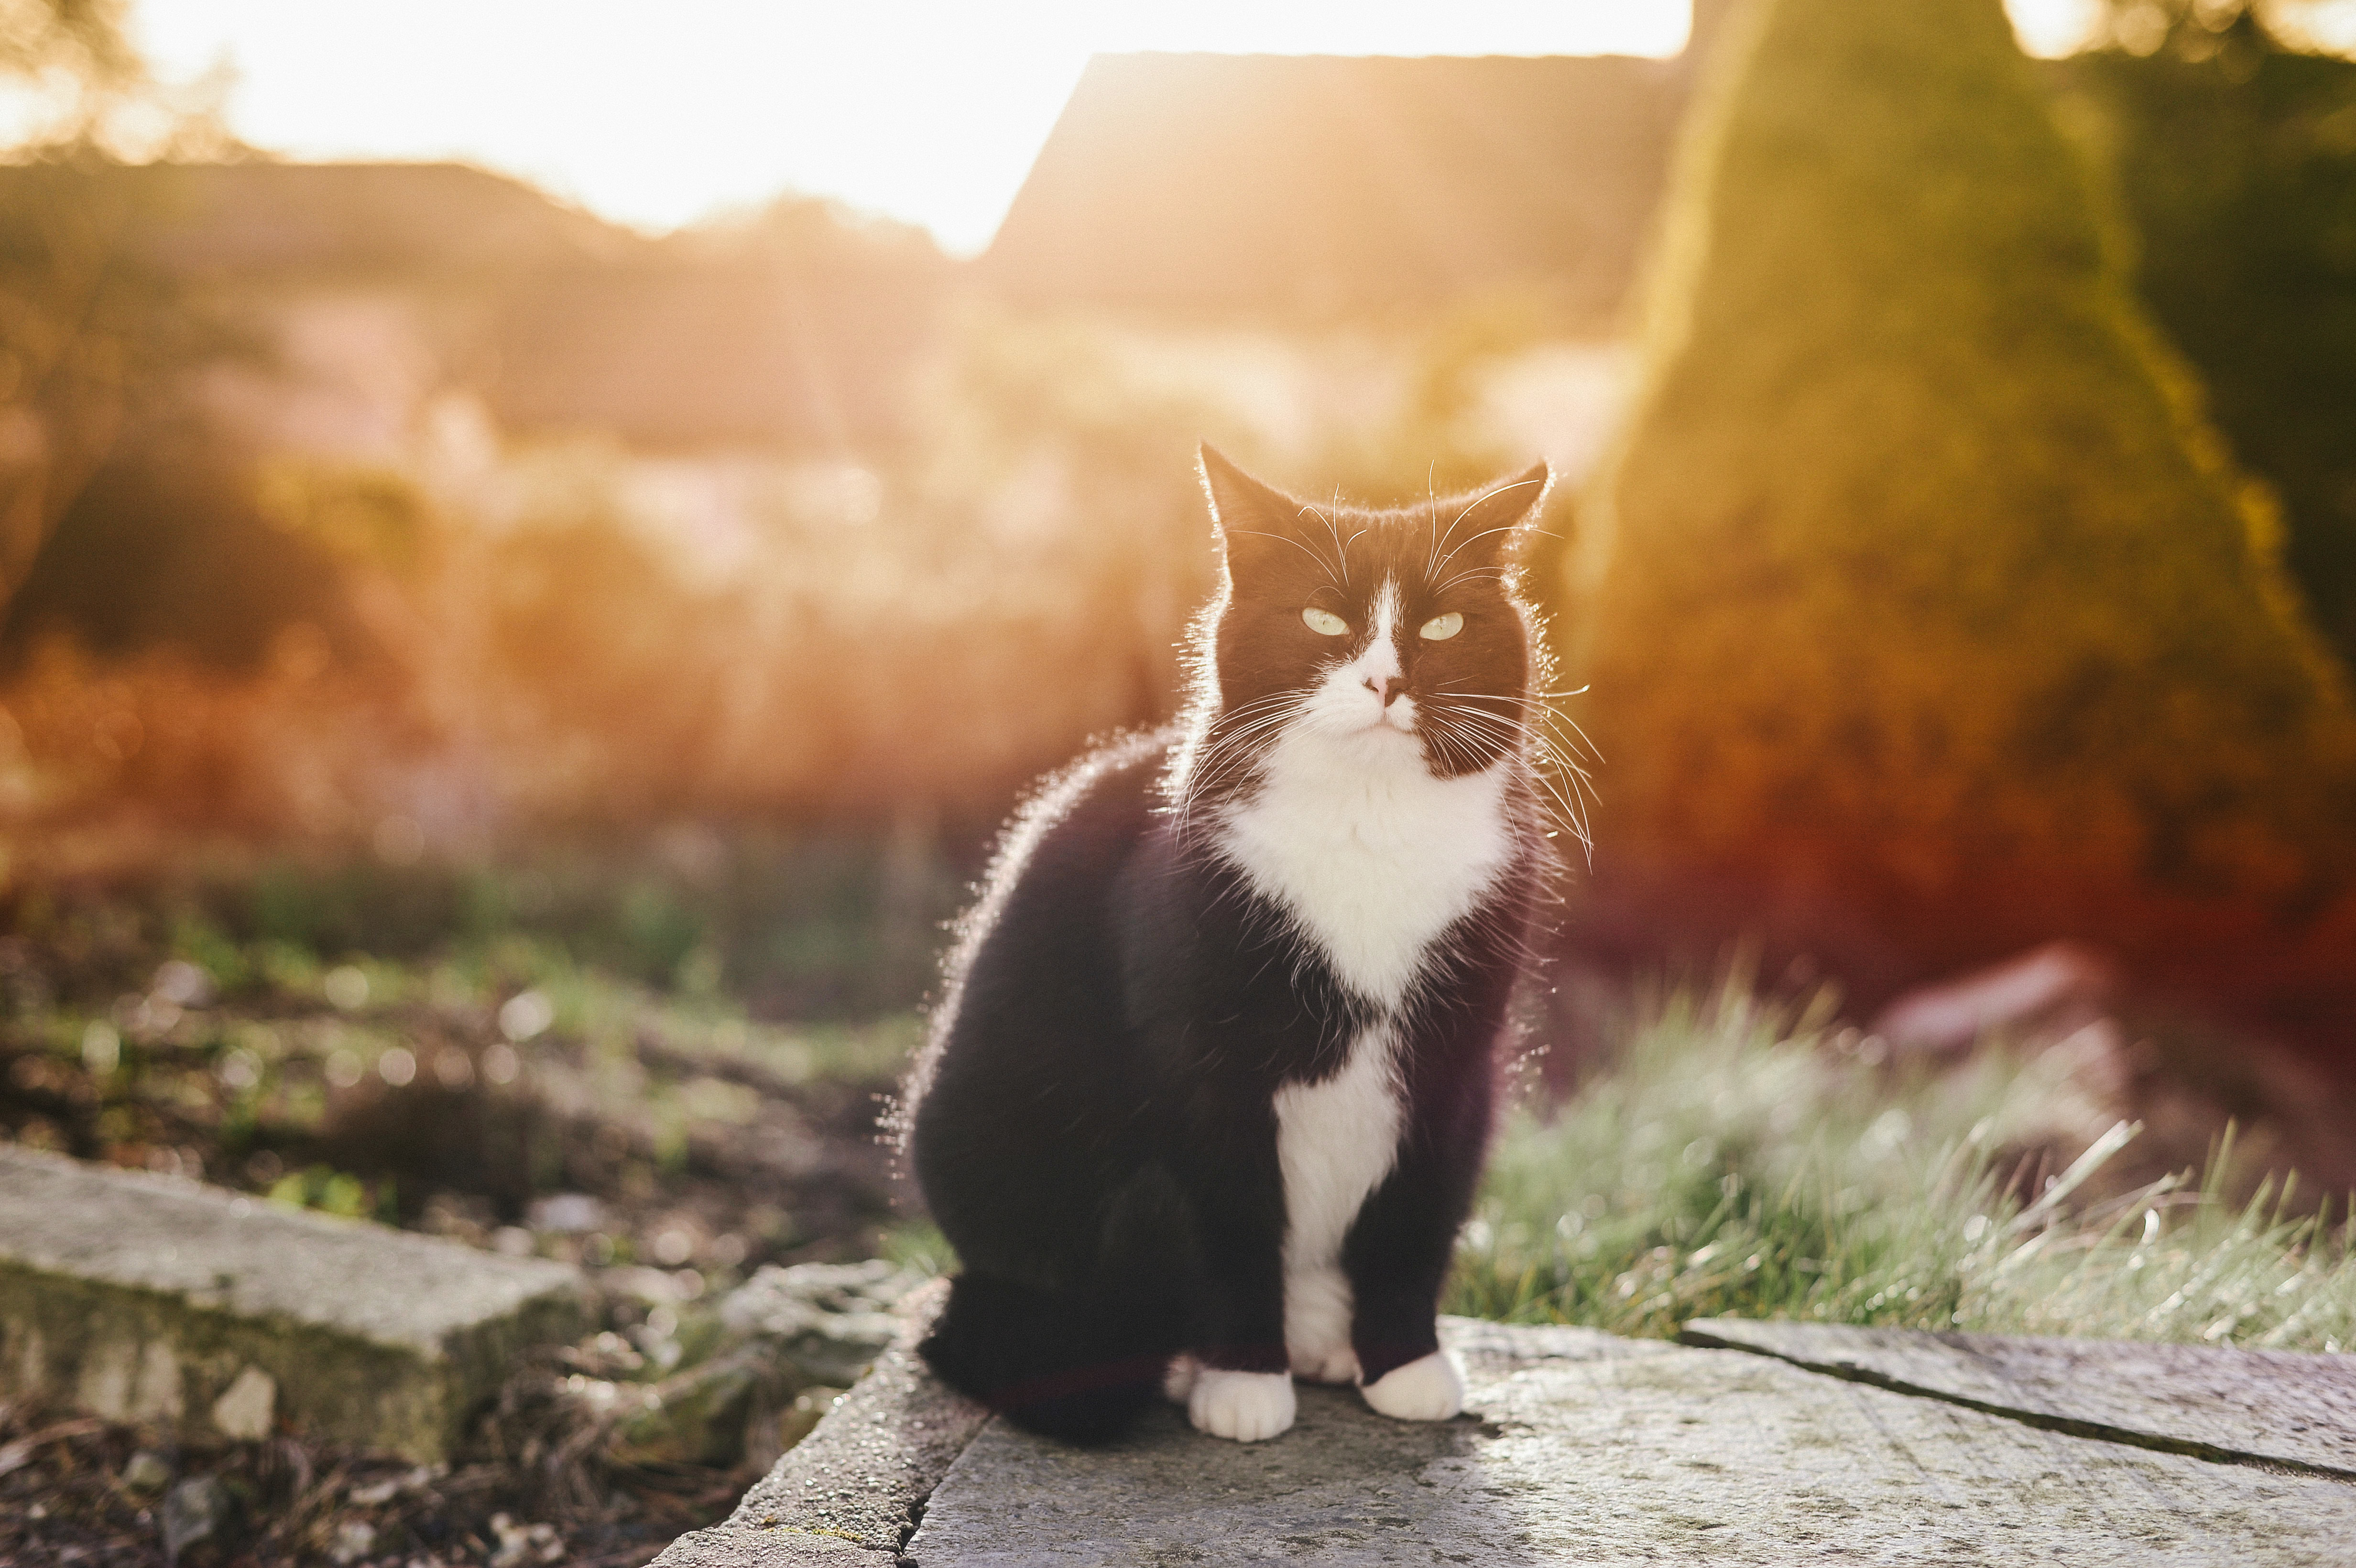 63050 download wallpaper Animals, Cat, Spotted, Spotty, Sunlight screensavers and pictures for free